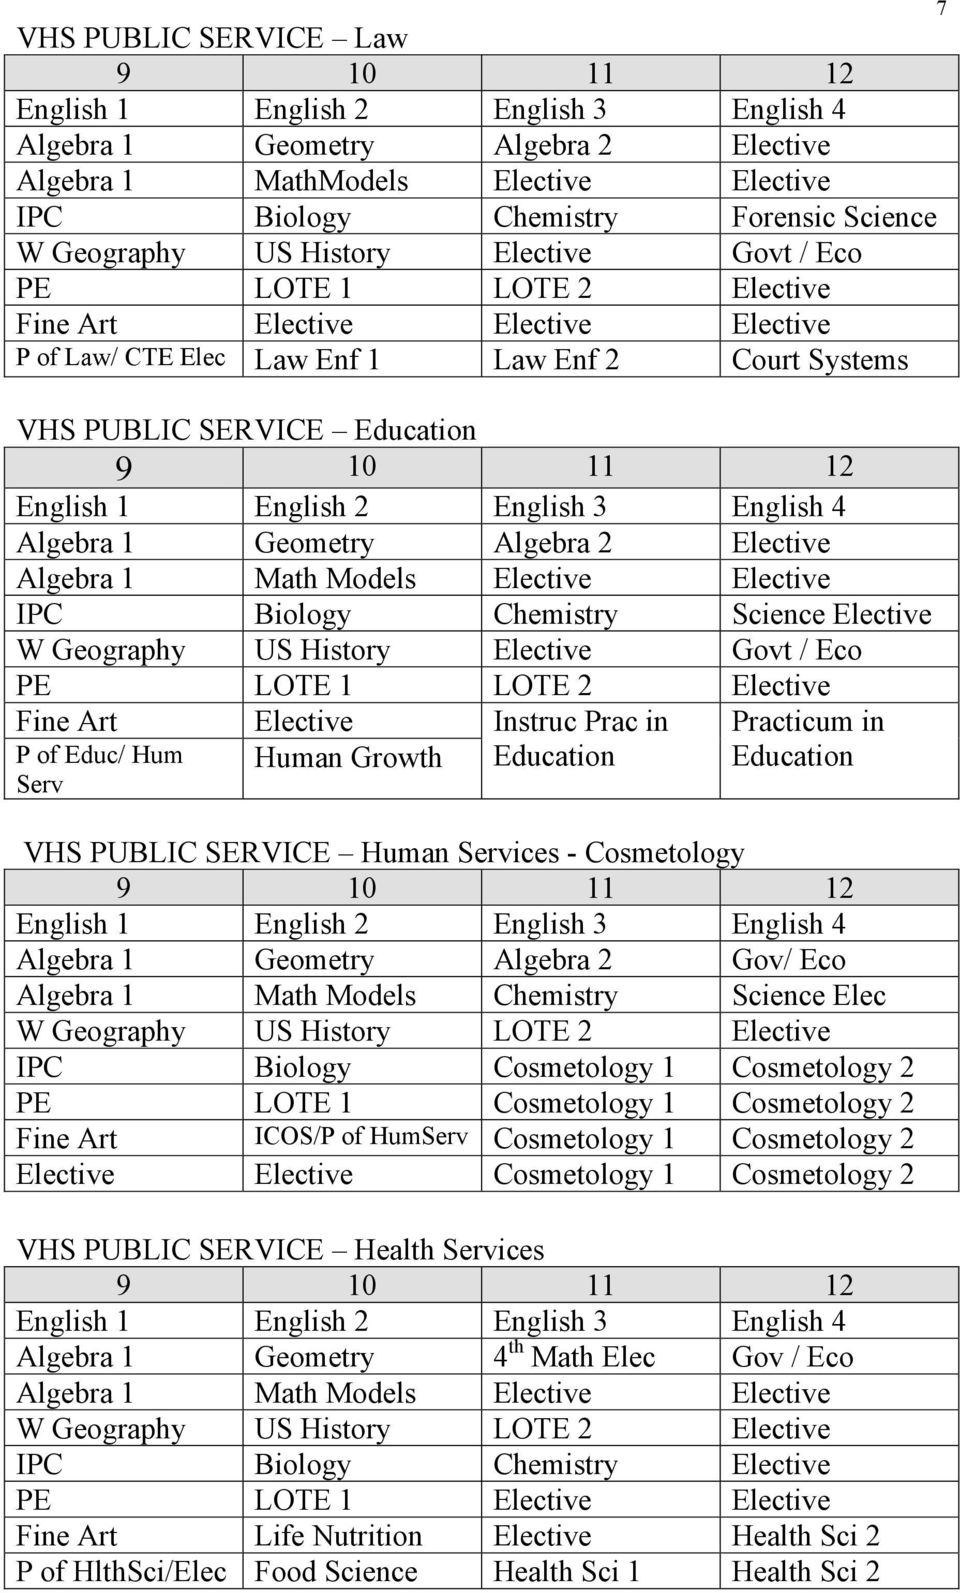 3 English 4 Algebra 1 Geometry Algebra 2 Elective Algebra 1 Math Models Elective Elective IPC Biology Chemistry Science Elective W Geography US History Elective Govt / Eco PE LOTE 1 LOTE 2 Elective